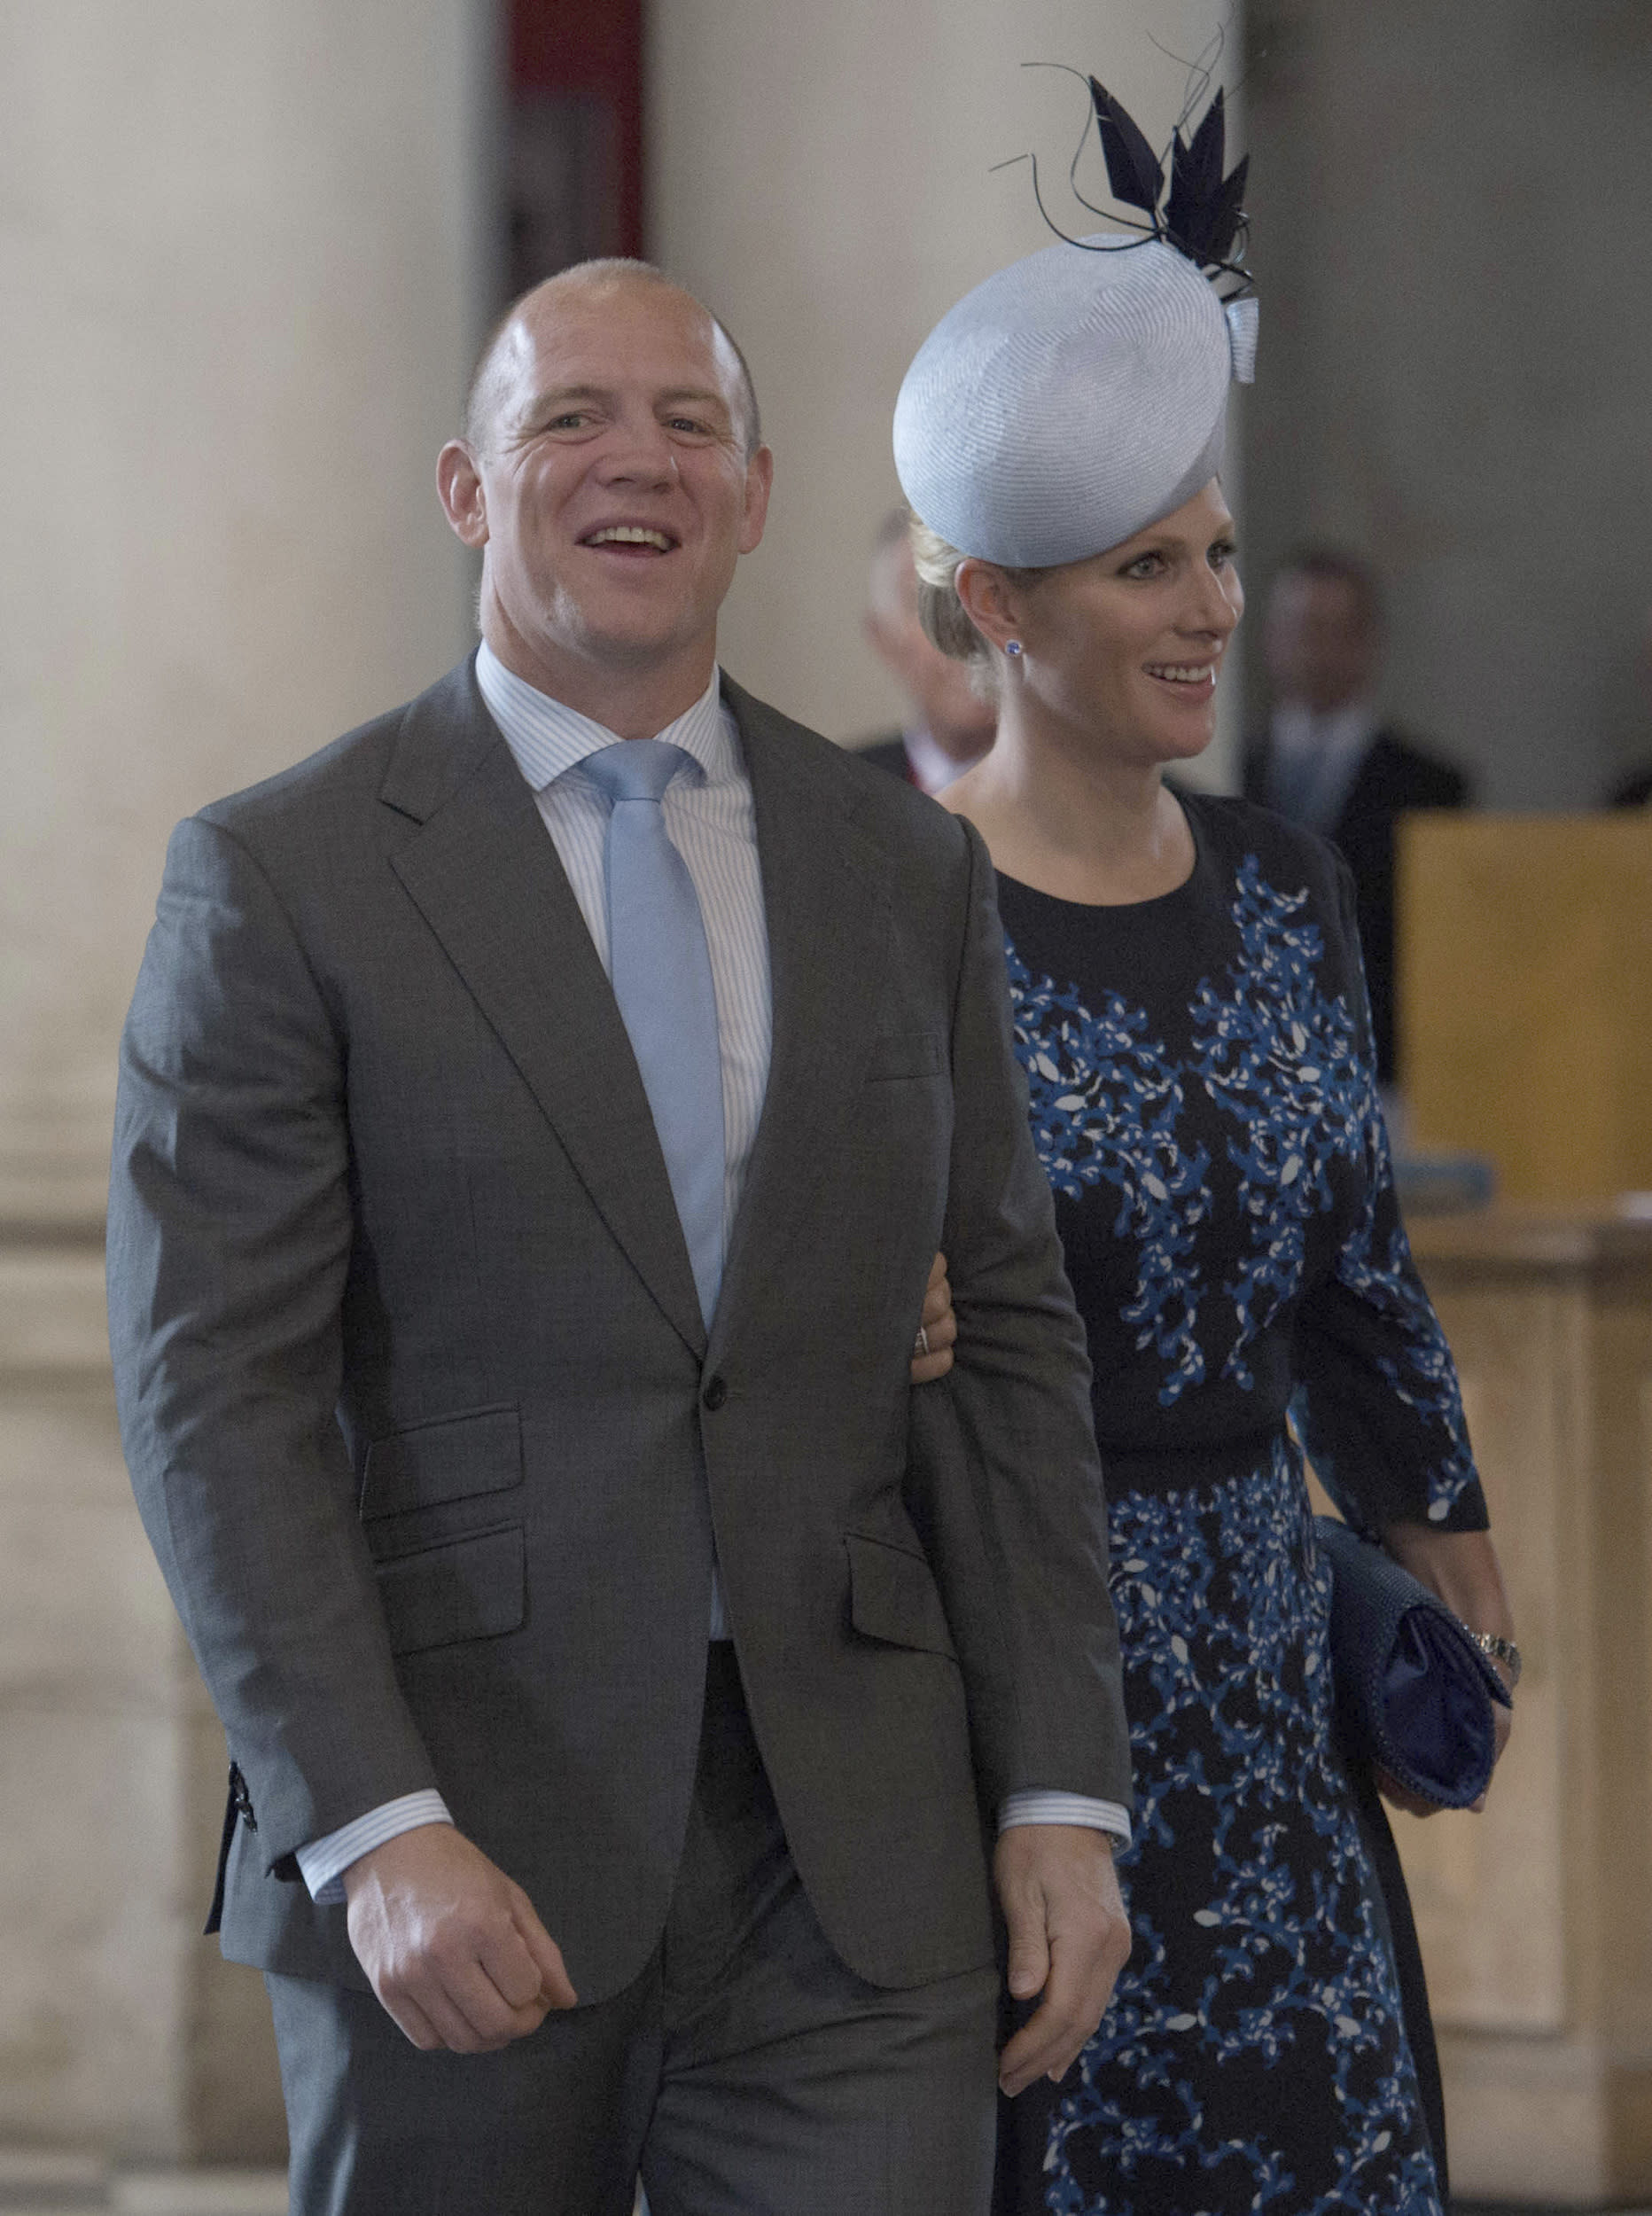 Mike and Zara Tindall arrive for a service of thanksgiving to mark the 90th birthday of Britain's Queen Elizabeth at St Paul's Cathedral in London, Britain, June 10, 2016. REUTERS/Stefan Rousseau/Pool